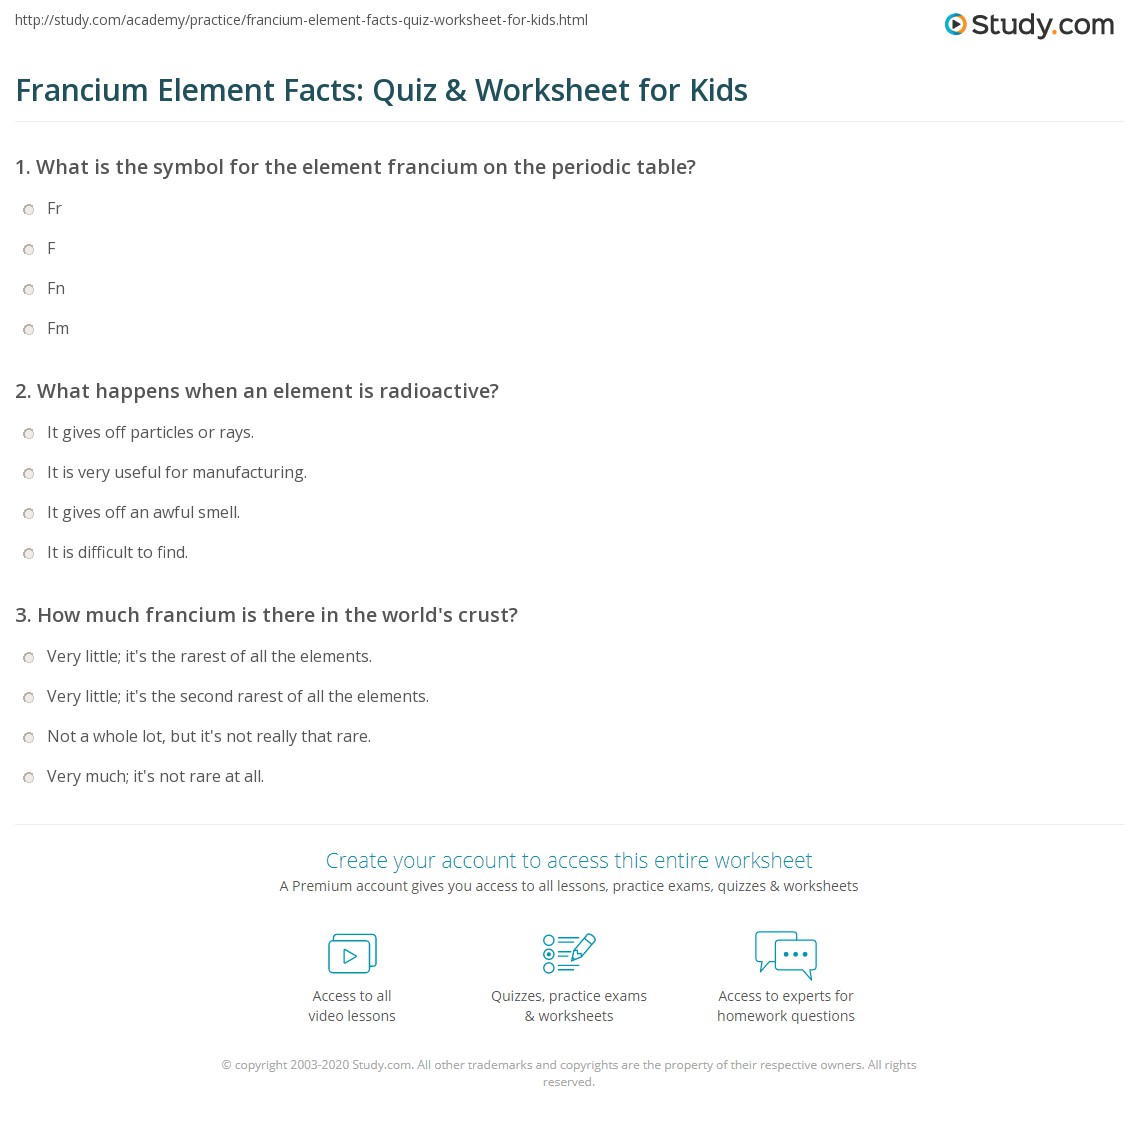 Francium Element Facts Quiz Worksheet For Kids Study